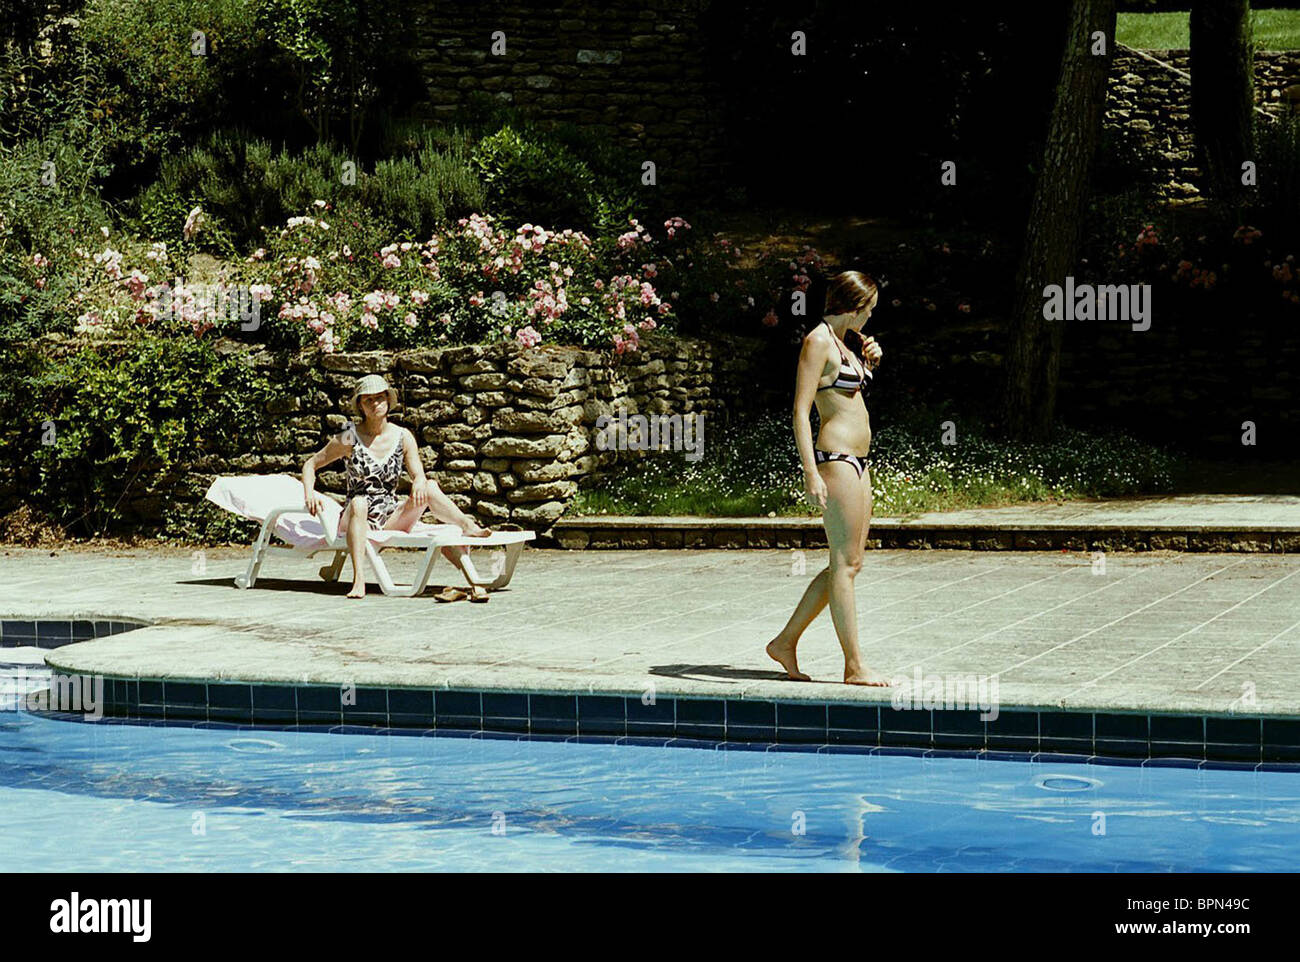 Charlotte rampling ludivine sagnier swimming pool 2003 stock photo 31197192 alamy for Charlotte rampling the swimming pool